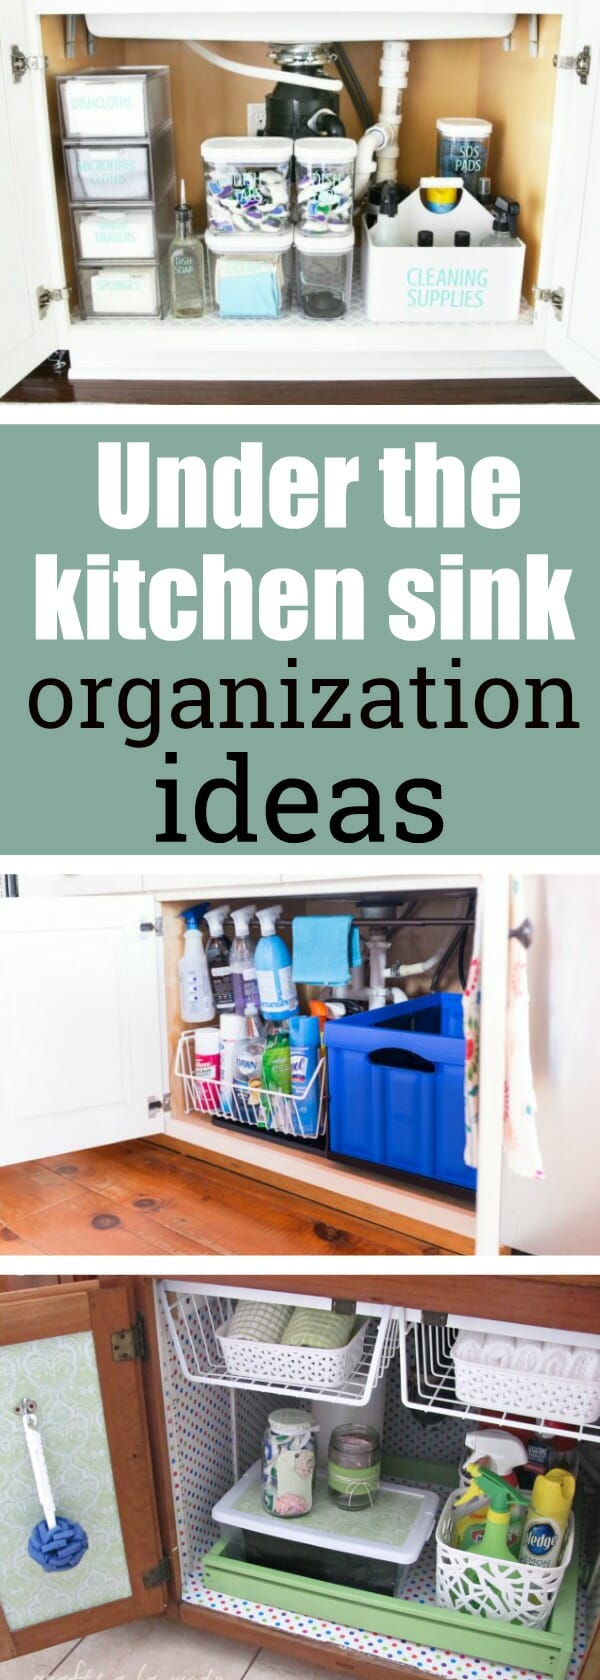 Under the kitchen sink organization ideas - My Mommy Style